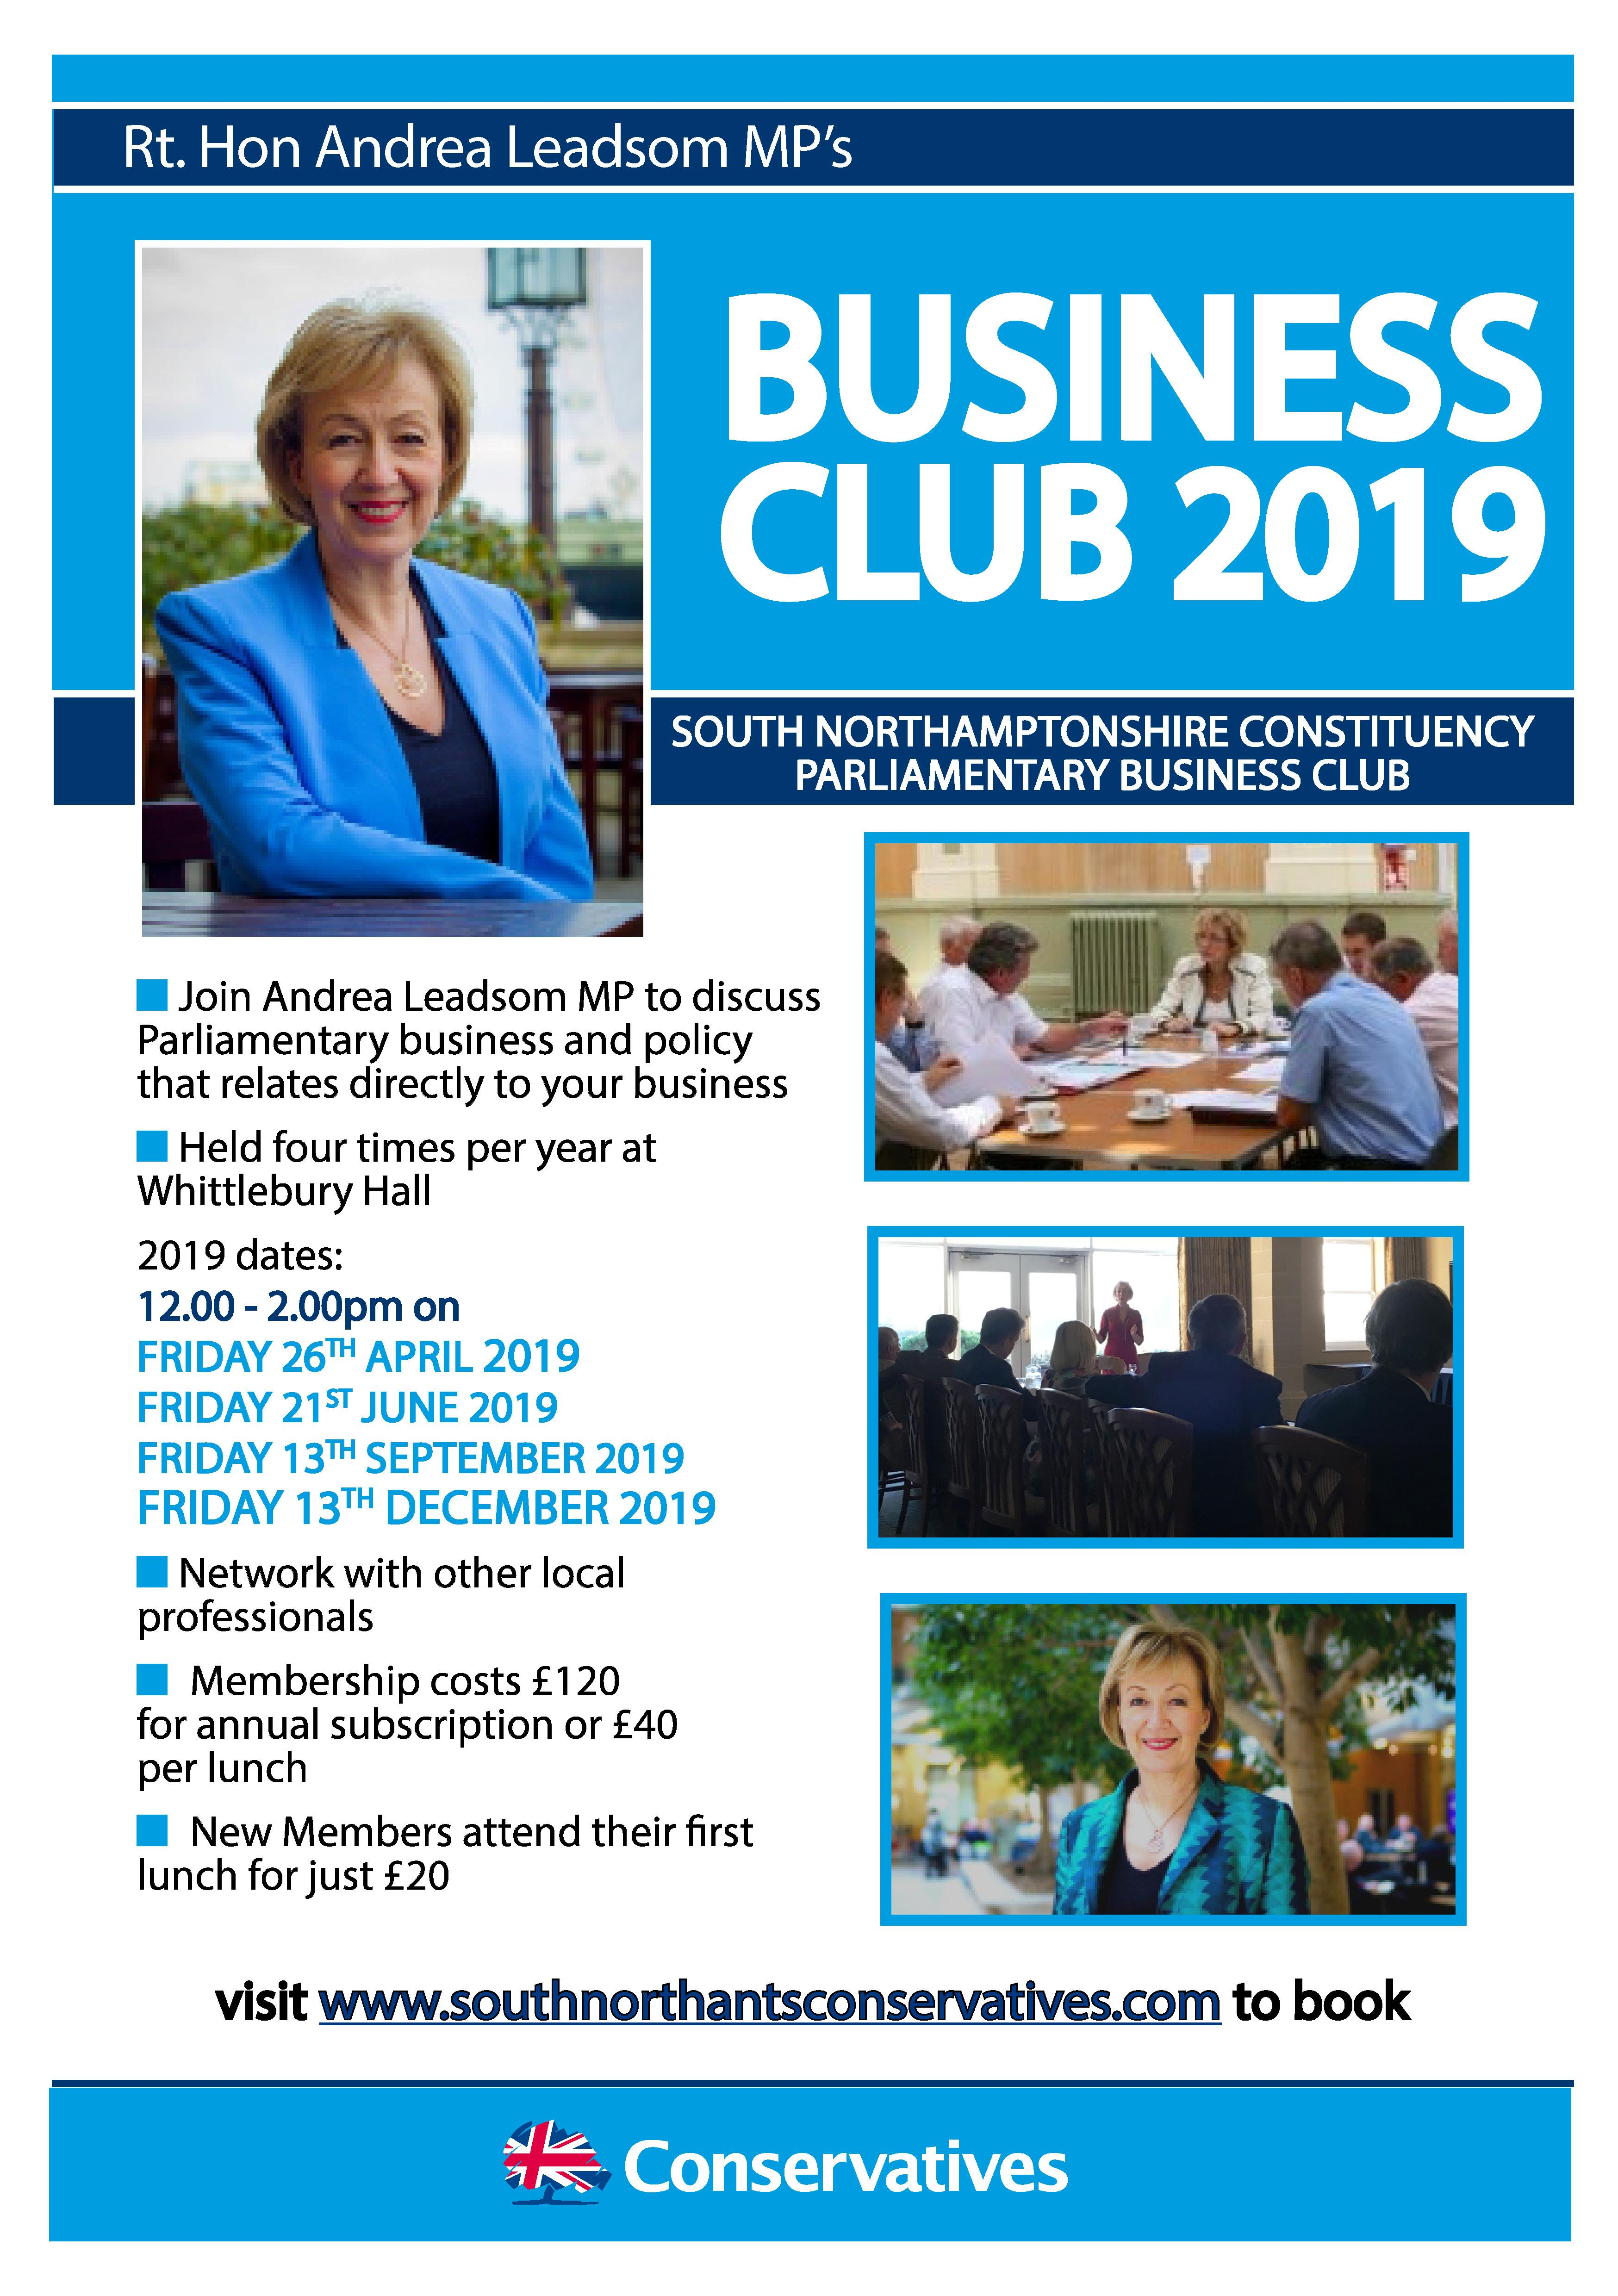 Andrea Leadsom's Business Club 2019